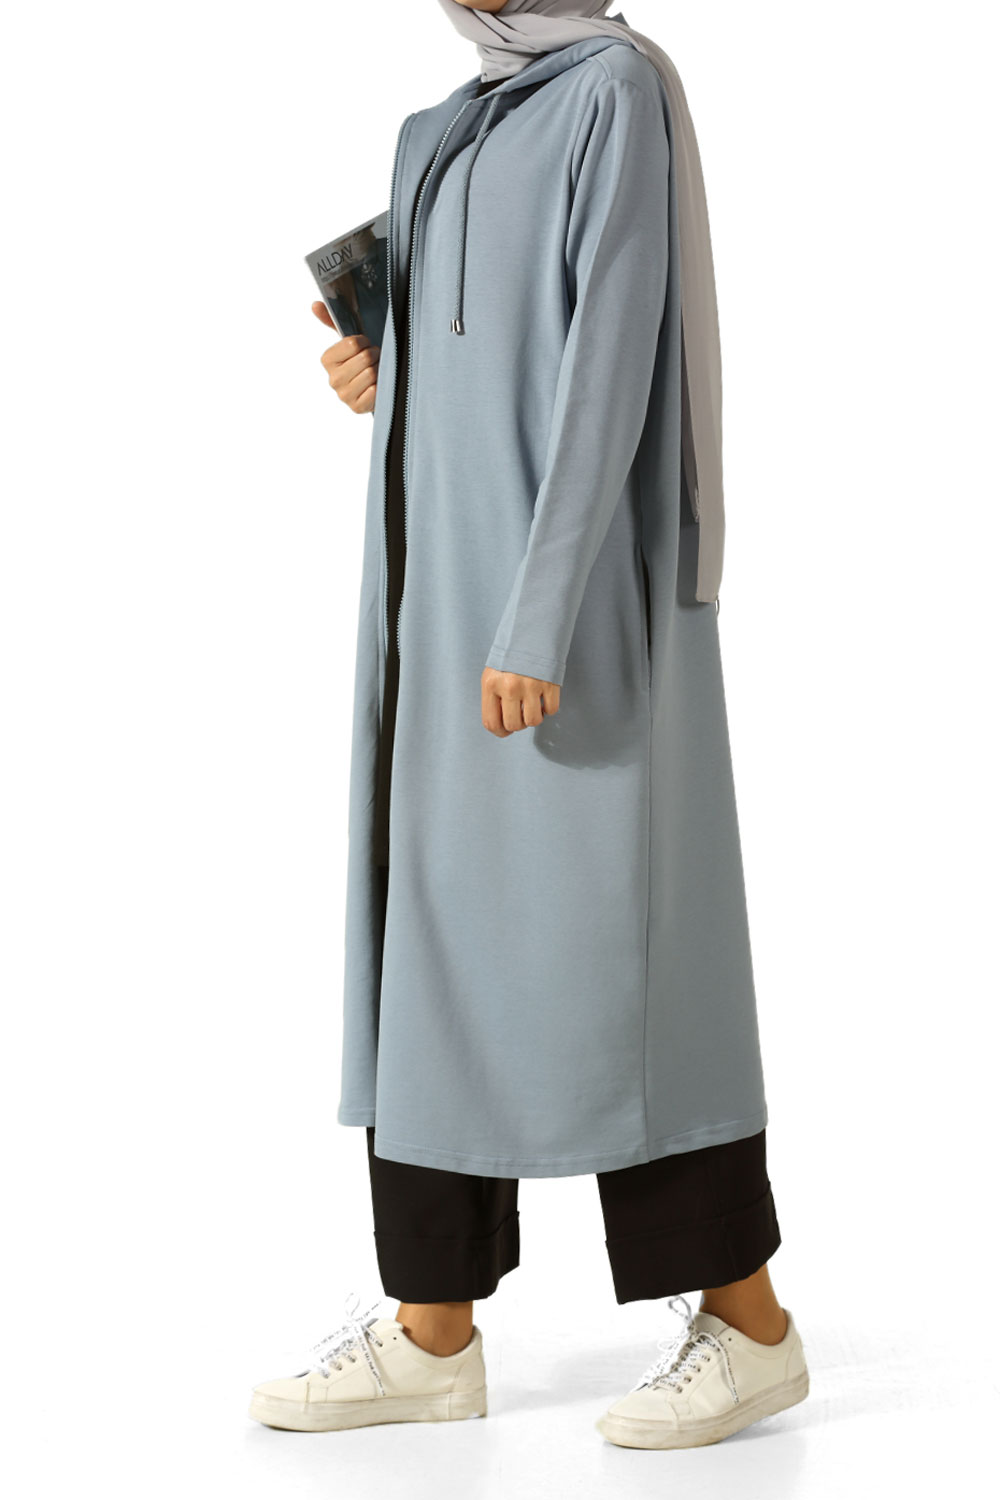 59a6709459f Blue Plus Size Hooded Tunic - BP51302